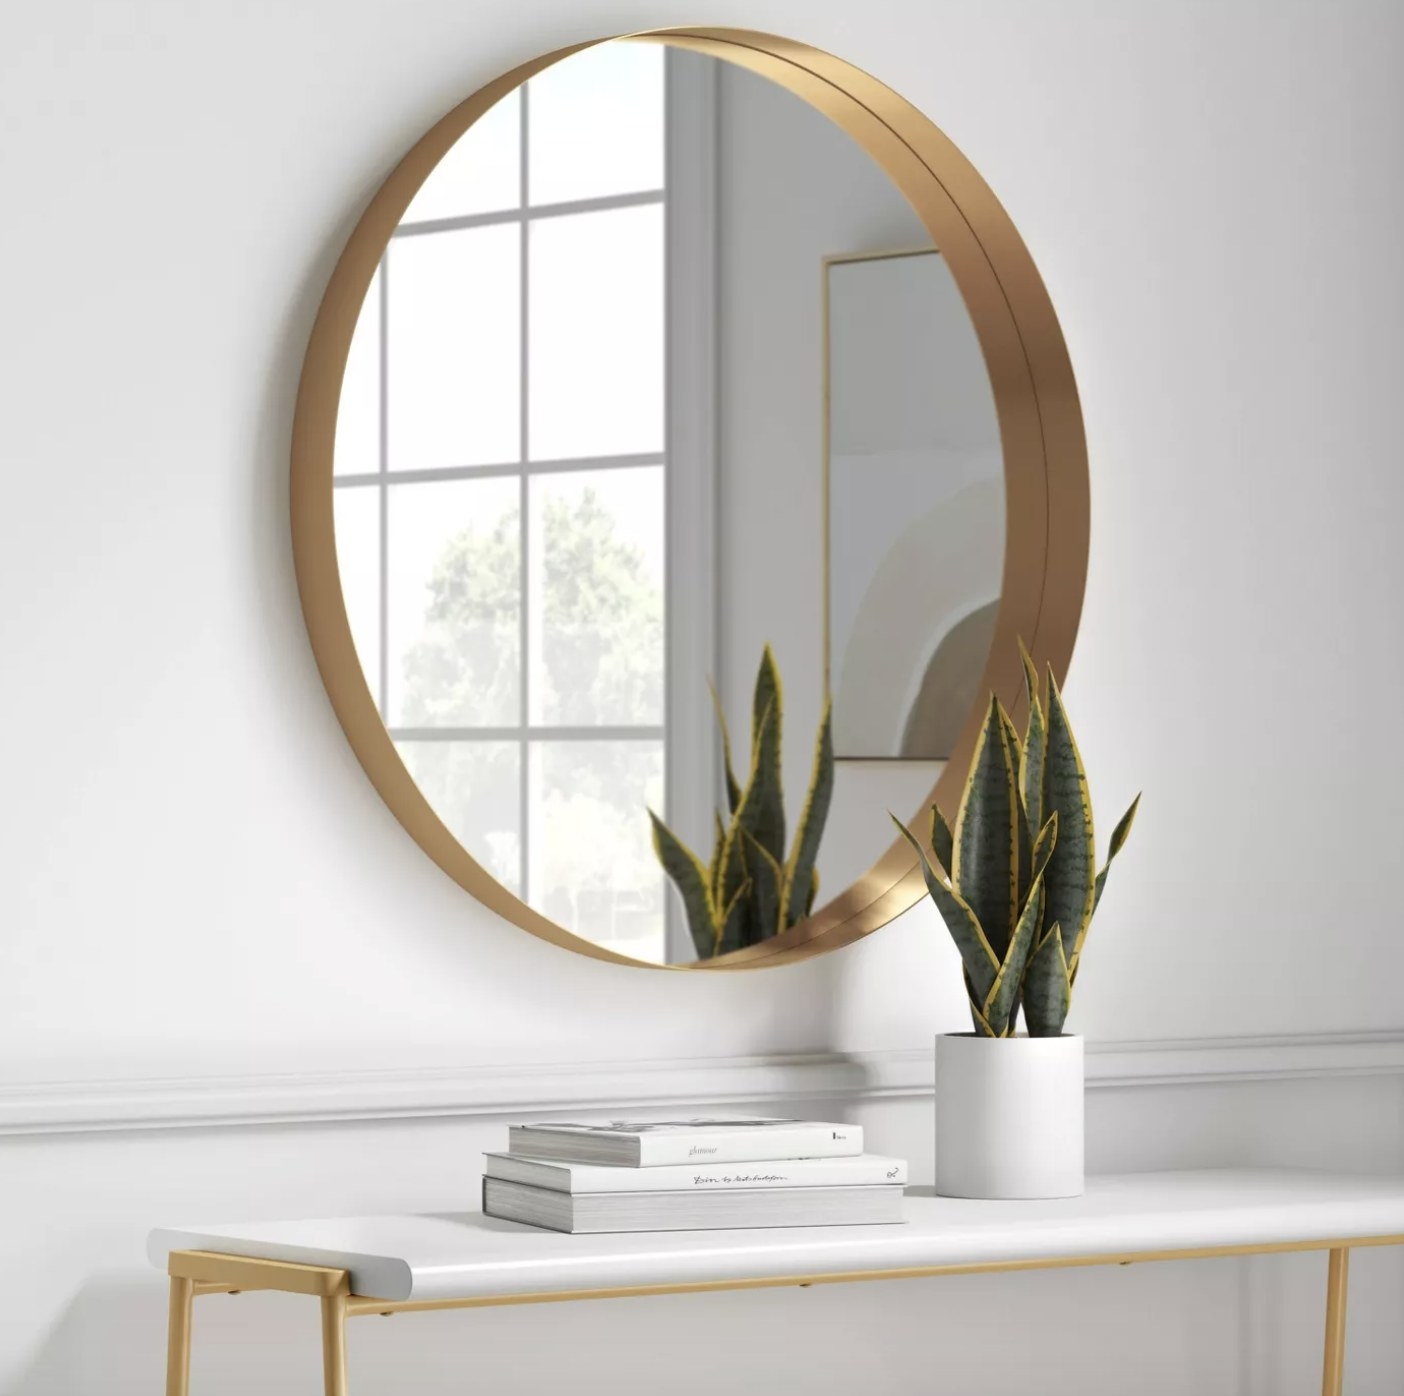 the mirror with gold metal detailing